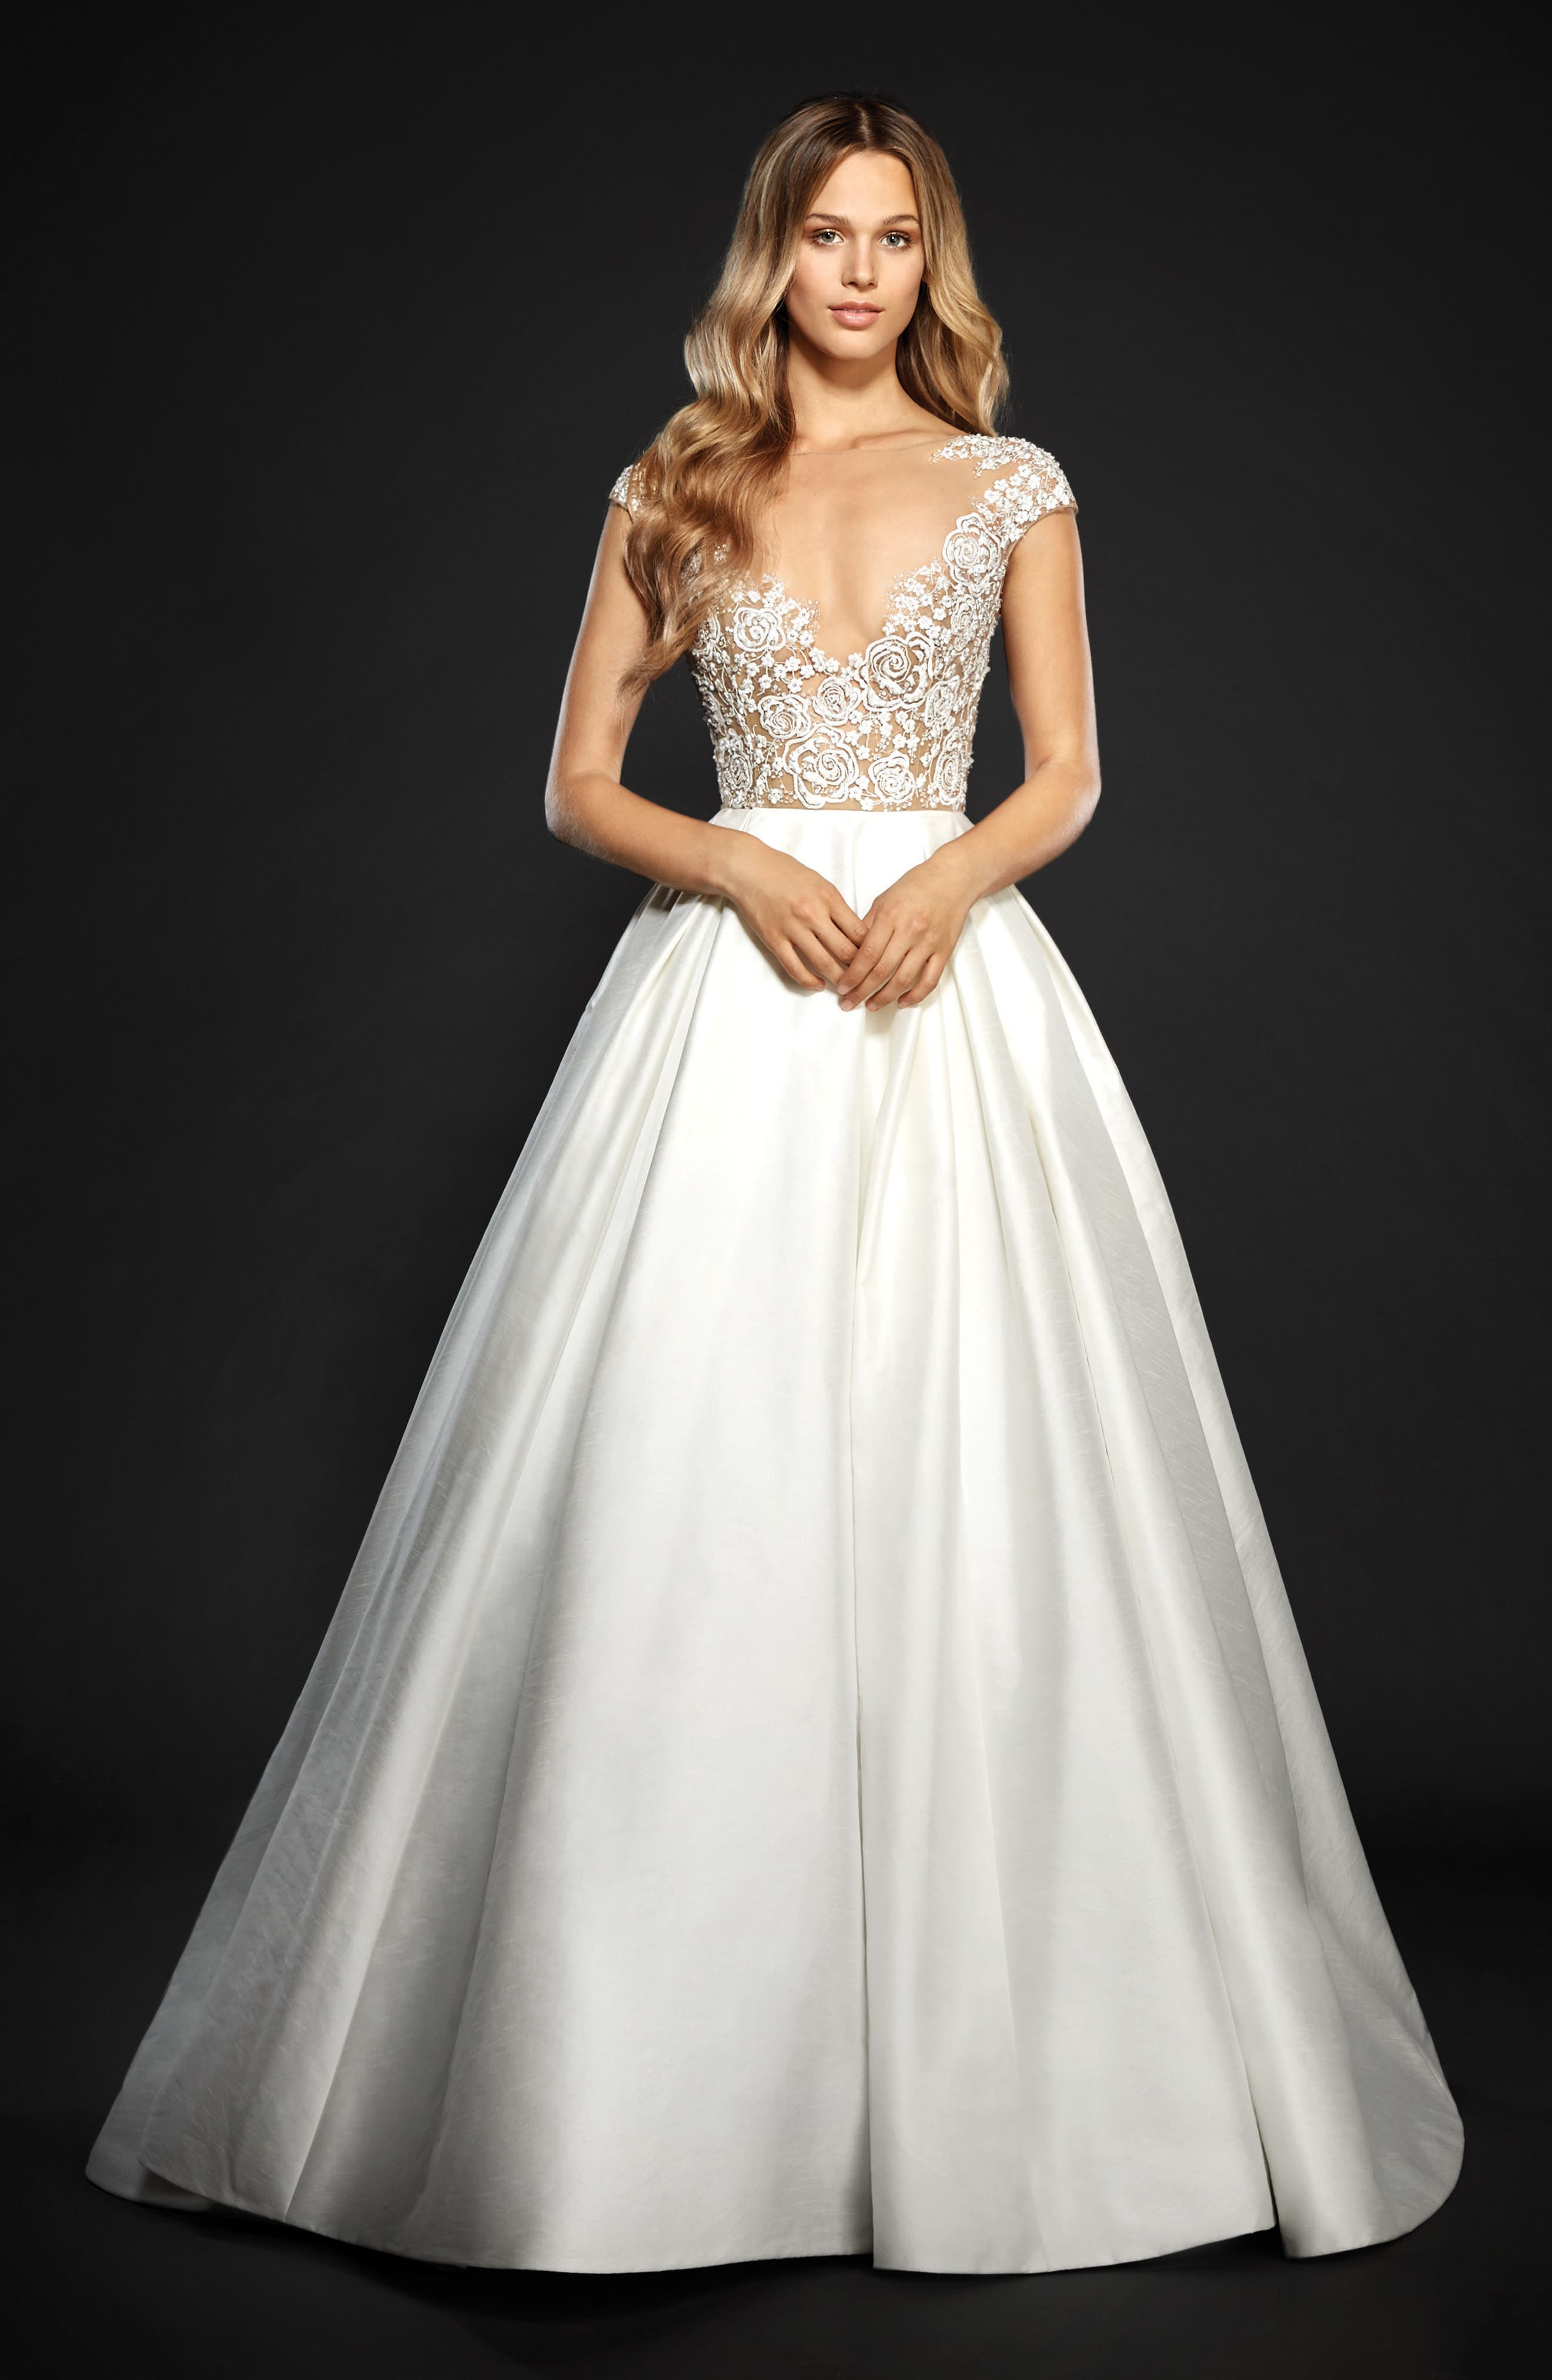 Chandler Floral Embroidered Illusion Ballgown,                             Alternate thumbnail 5, color,                             IVORY